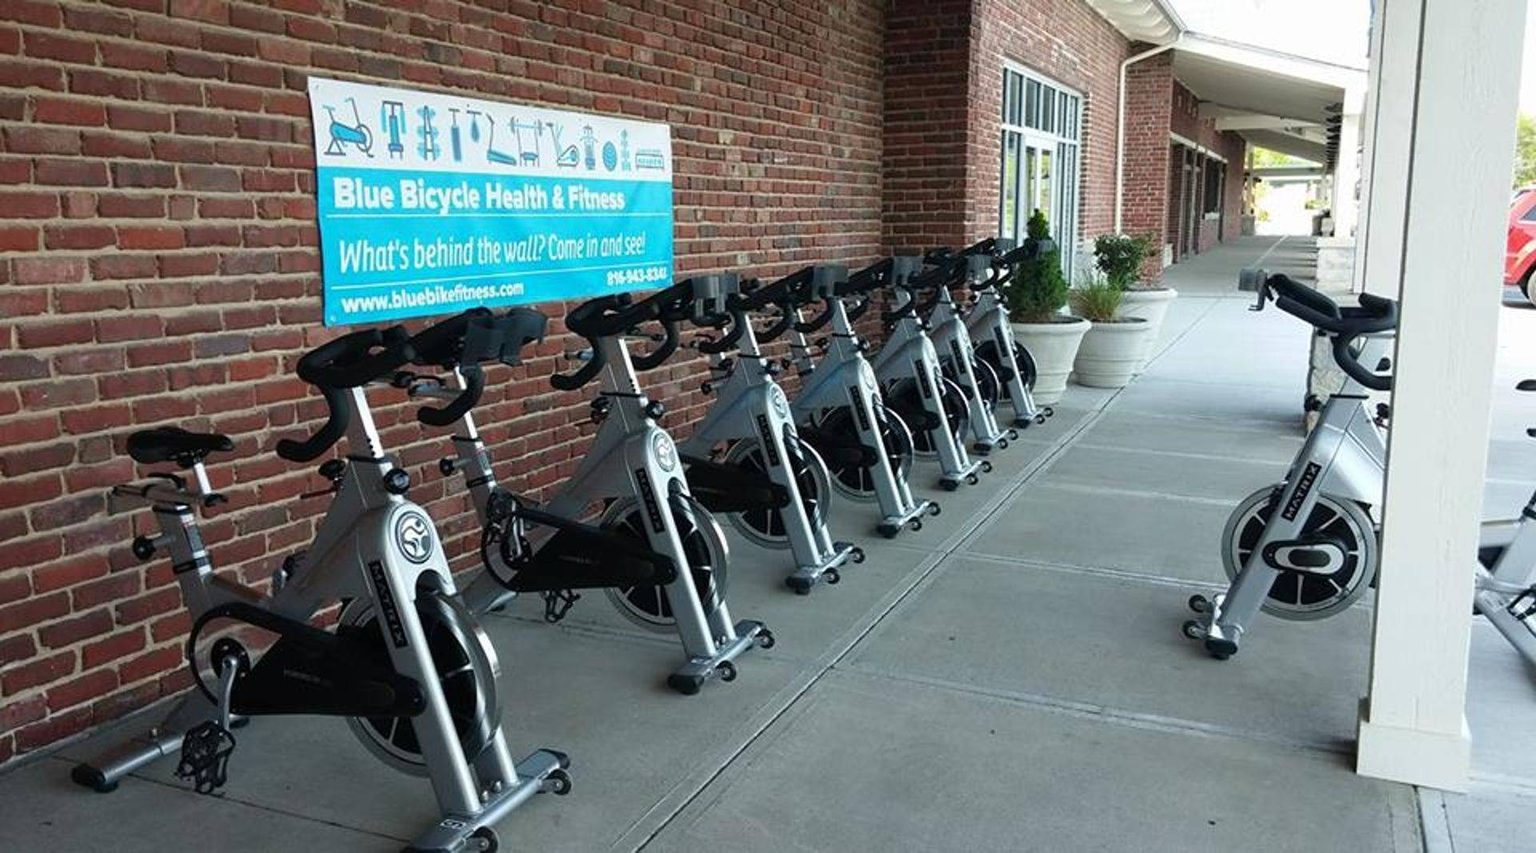 Photo from Blue Bicycle Health & Fitness